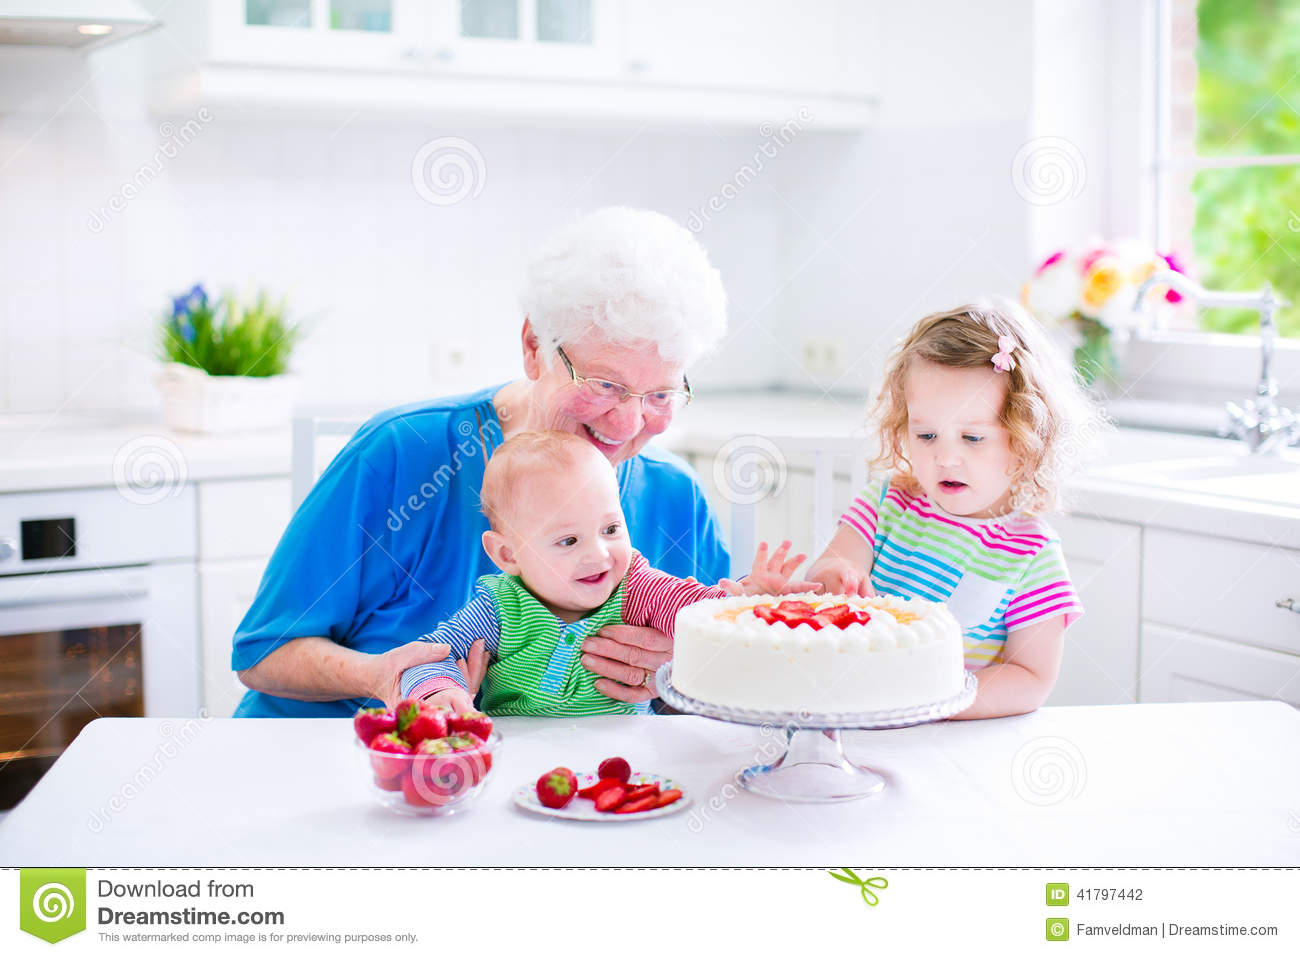 grandmother baking cake kids happy senior lady loving homemade strawberry two children cute laughing baby boy adorable 41797442 birthday cake for toddler girl 6 on birthday cake for toddler girl